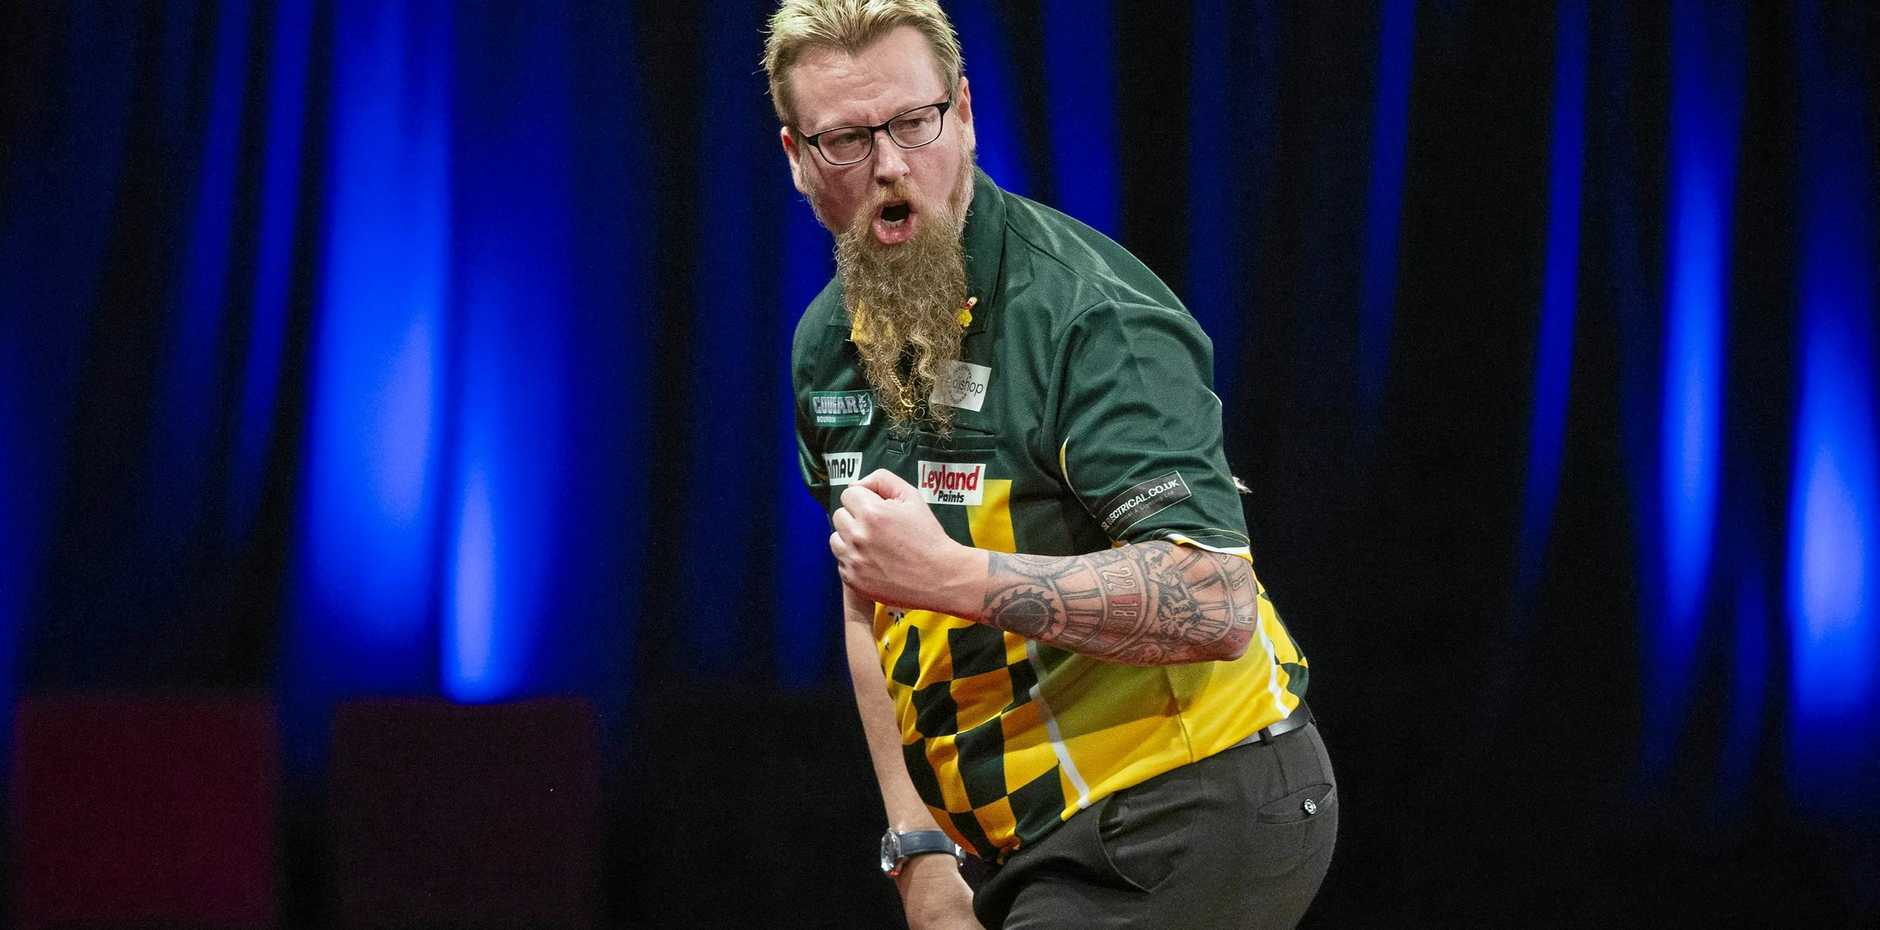 Simon Whitlock celebrates a win during the Brisbane Darts Masters.